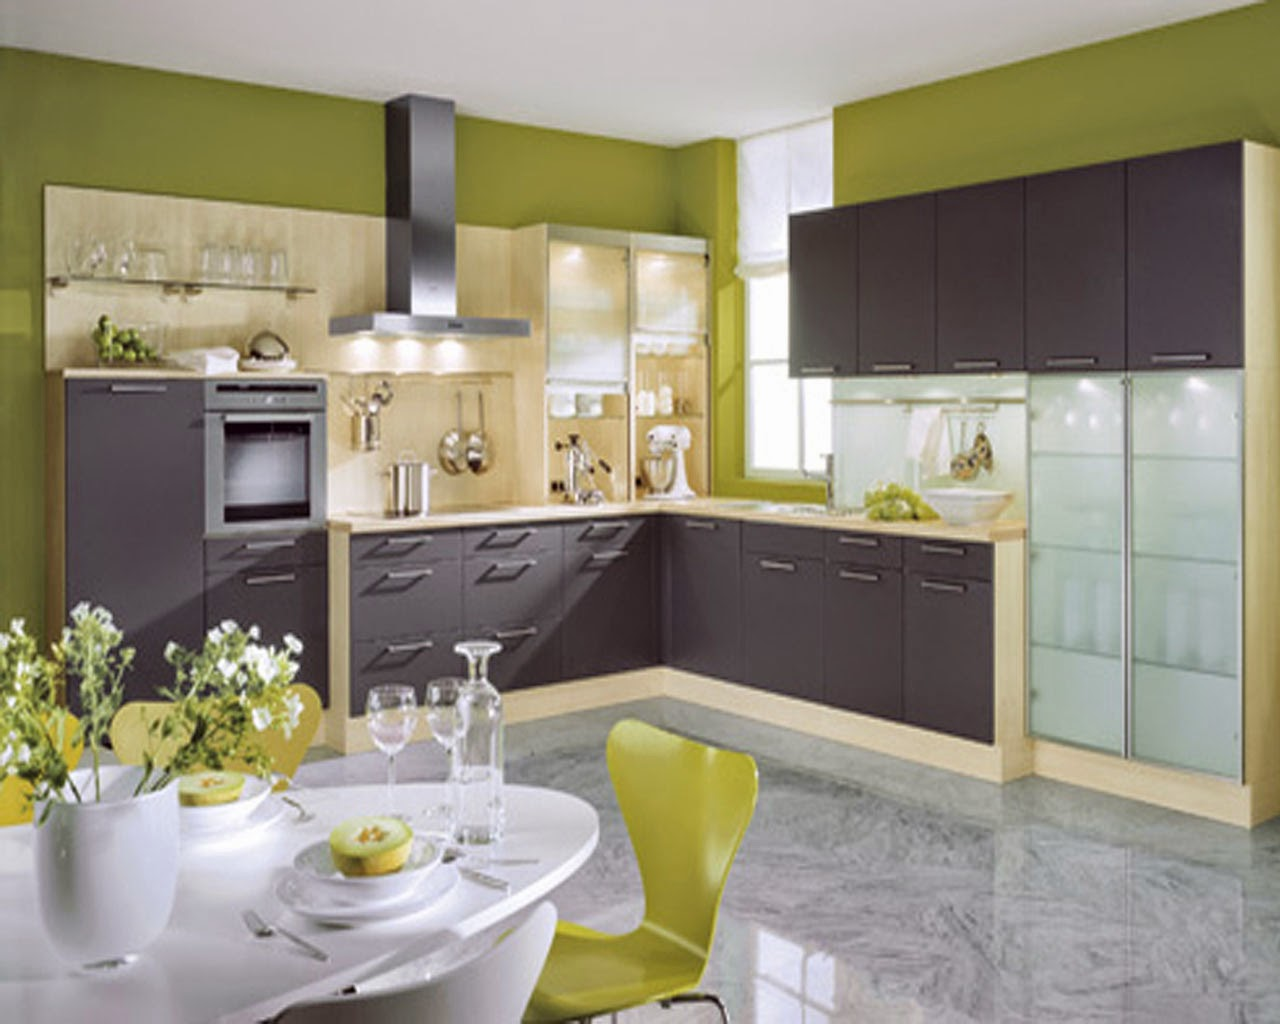 Kitchen designing ideas 2014 freshnist design for Kitchen top design